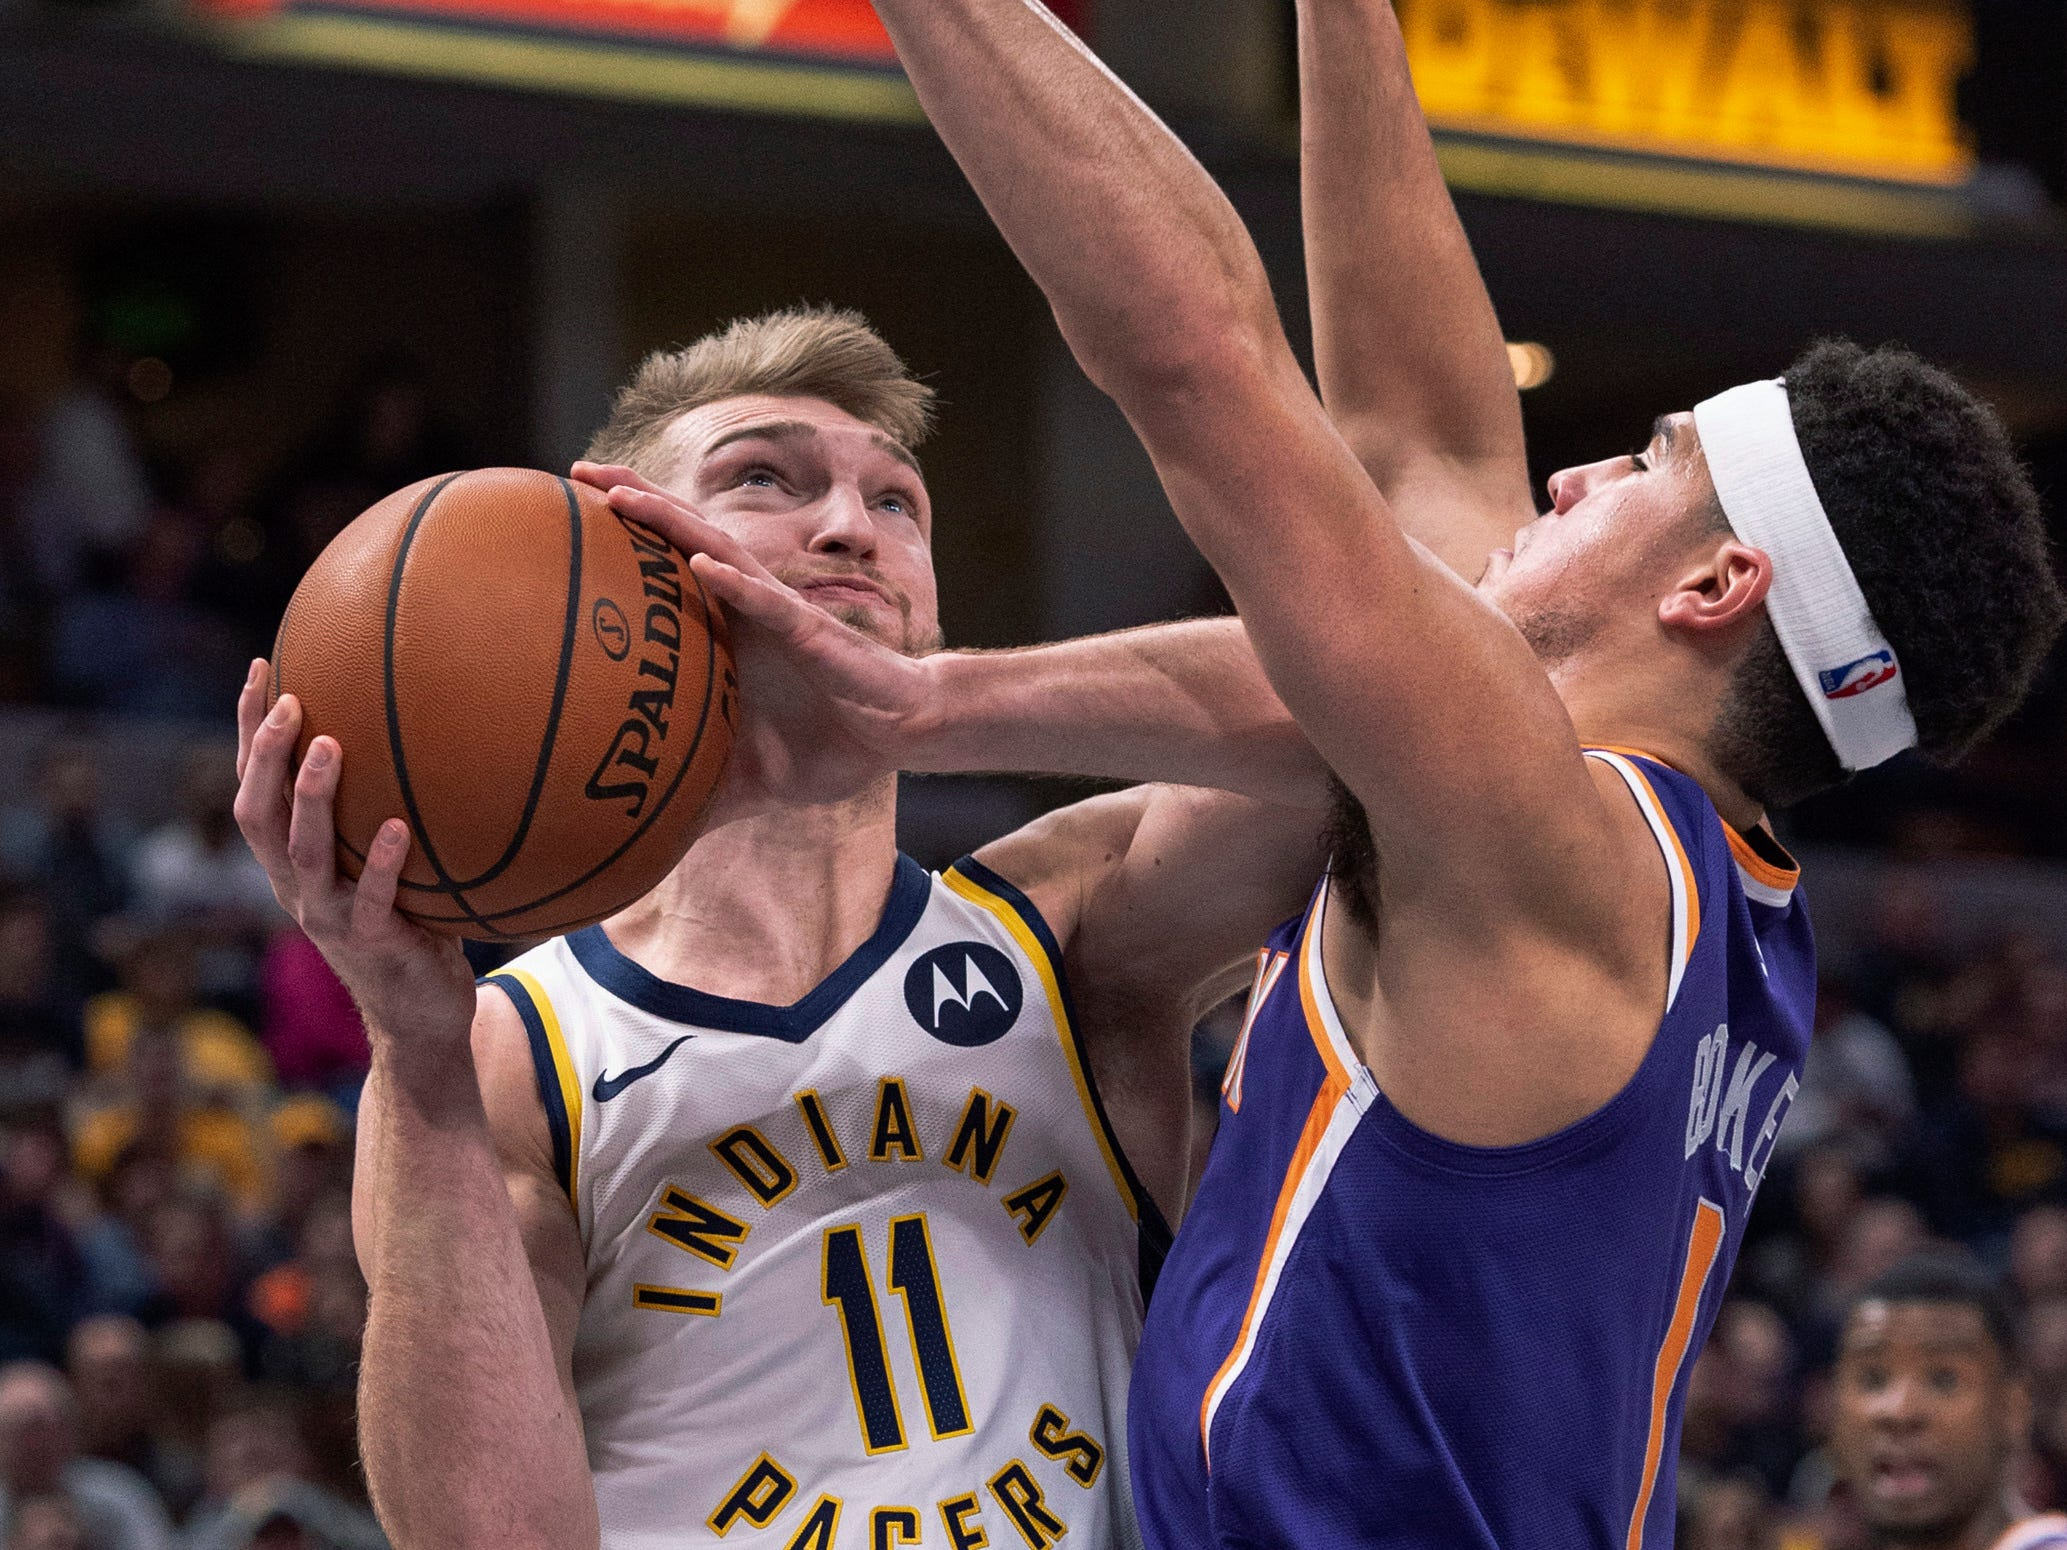 Indiana Pacers forward Domantas Sabonis (11) drives to the basket as Phoenix Suns guard Devin Booker (1) defends during the second half of an NBA basketball game Tuesday, Jan. 15, 2019, in Indianapolis. The Pacers won 131-97.